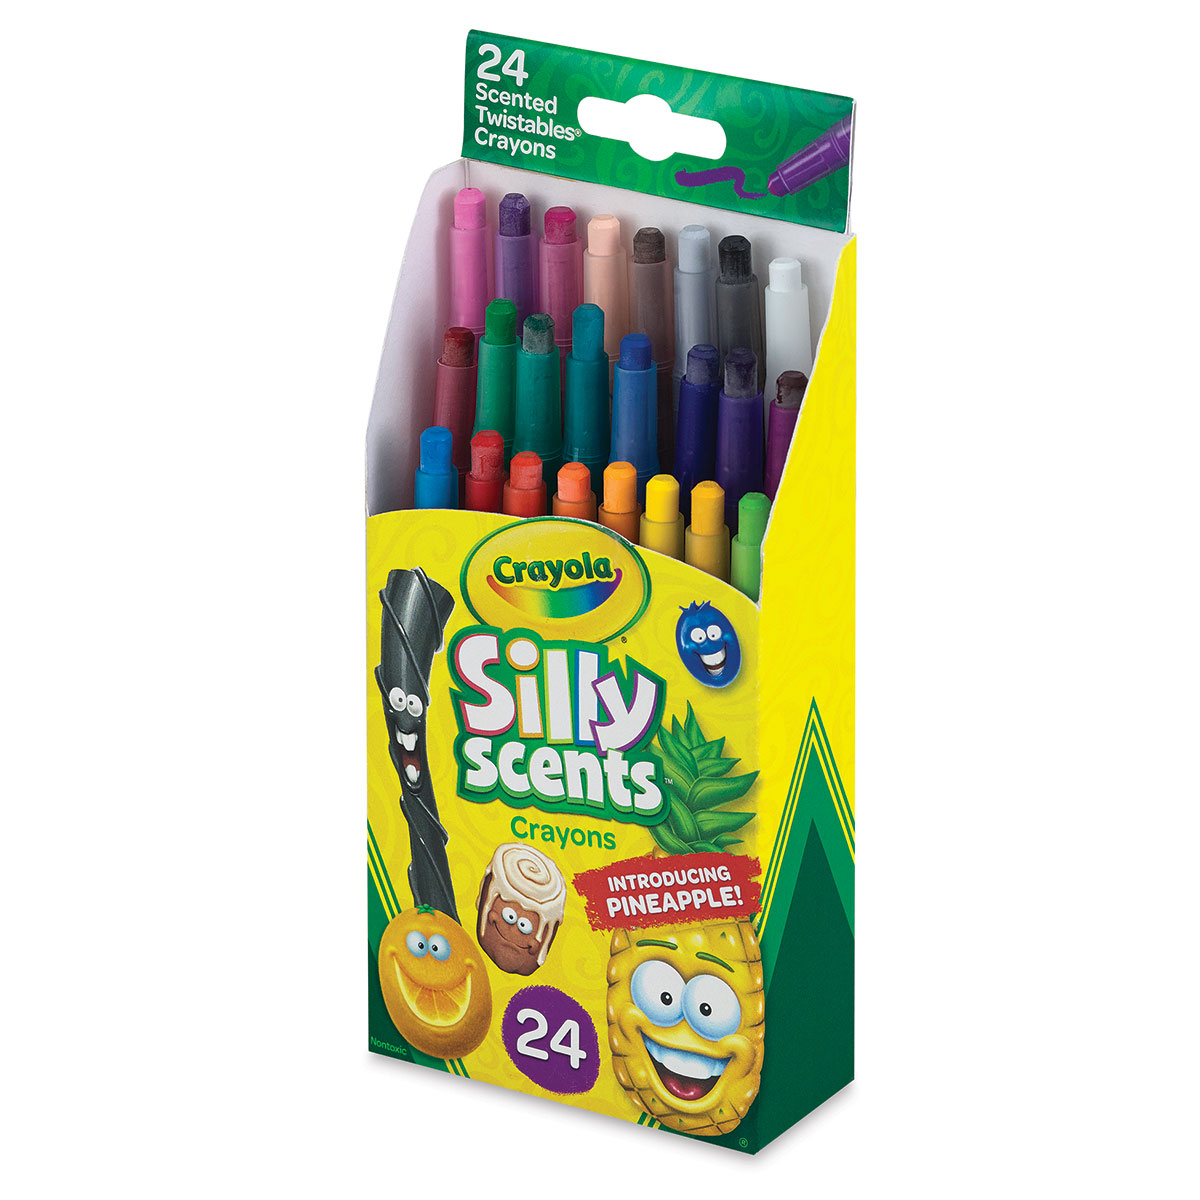 Crayola Silly Scents Mini Twistables Crayons - Set of 24